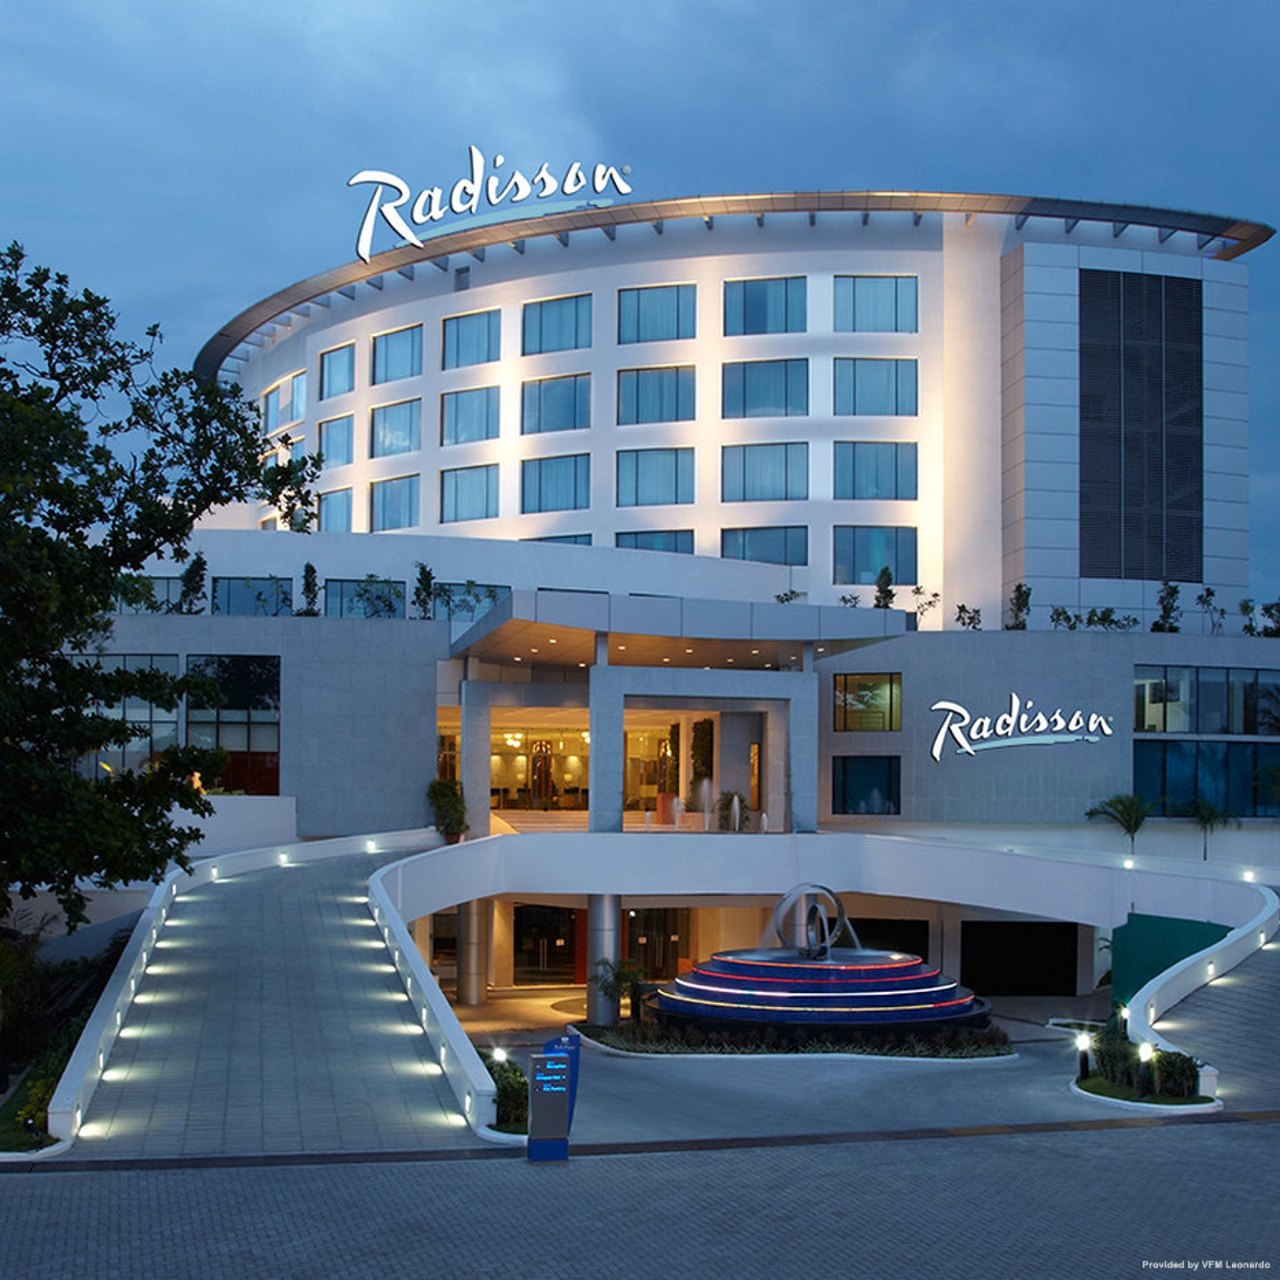 Radisson Salem India At Hrs With Free Services